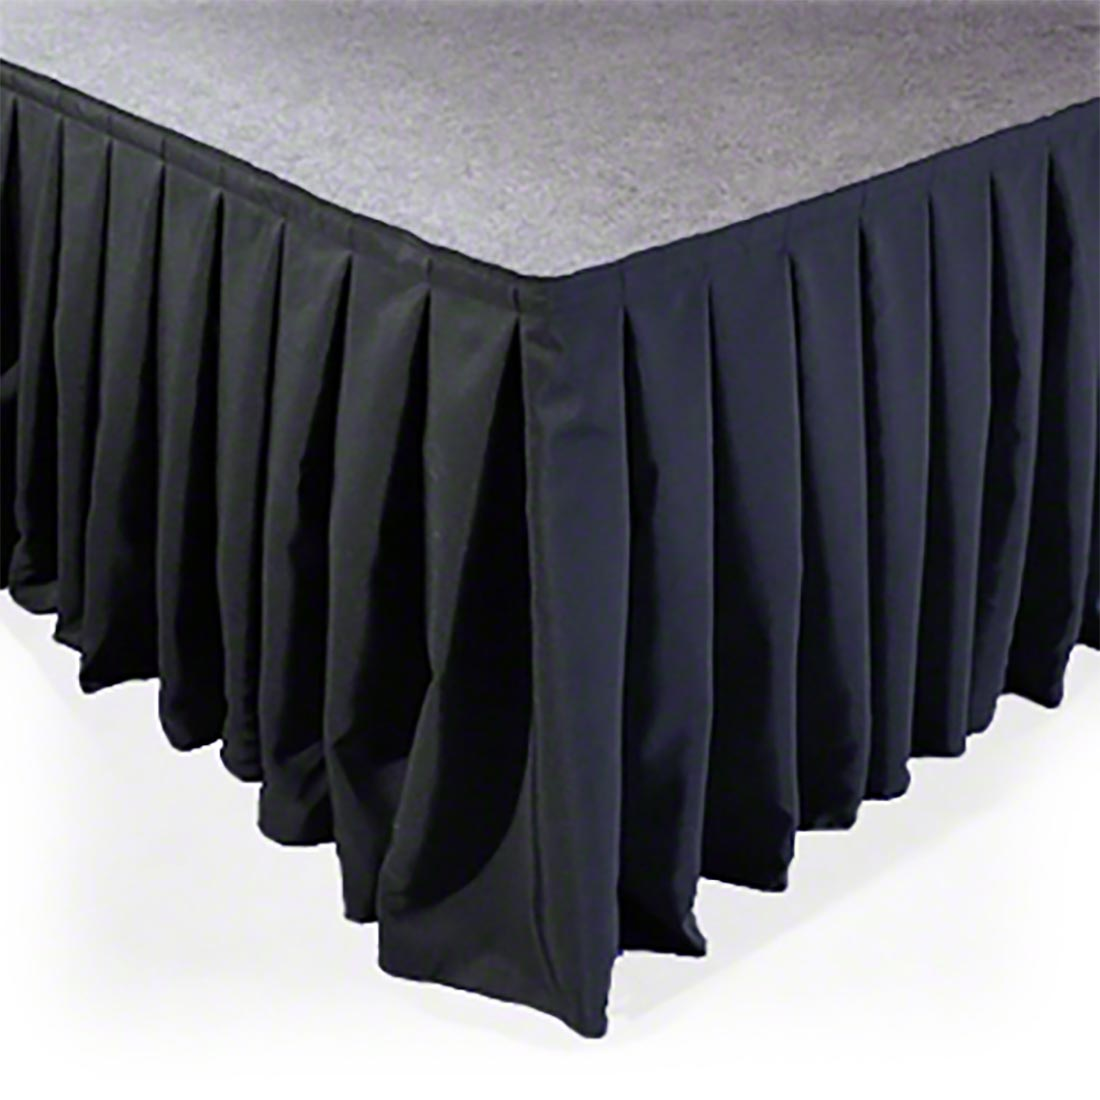 Ameristage Box-Pleat Stage Skirts in Custom Sizes/Colors